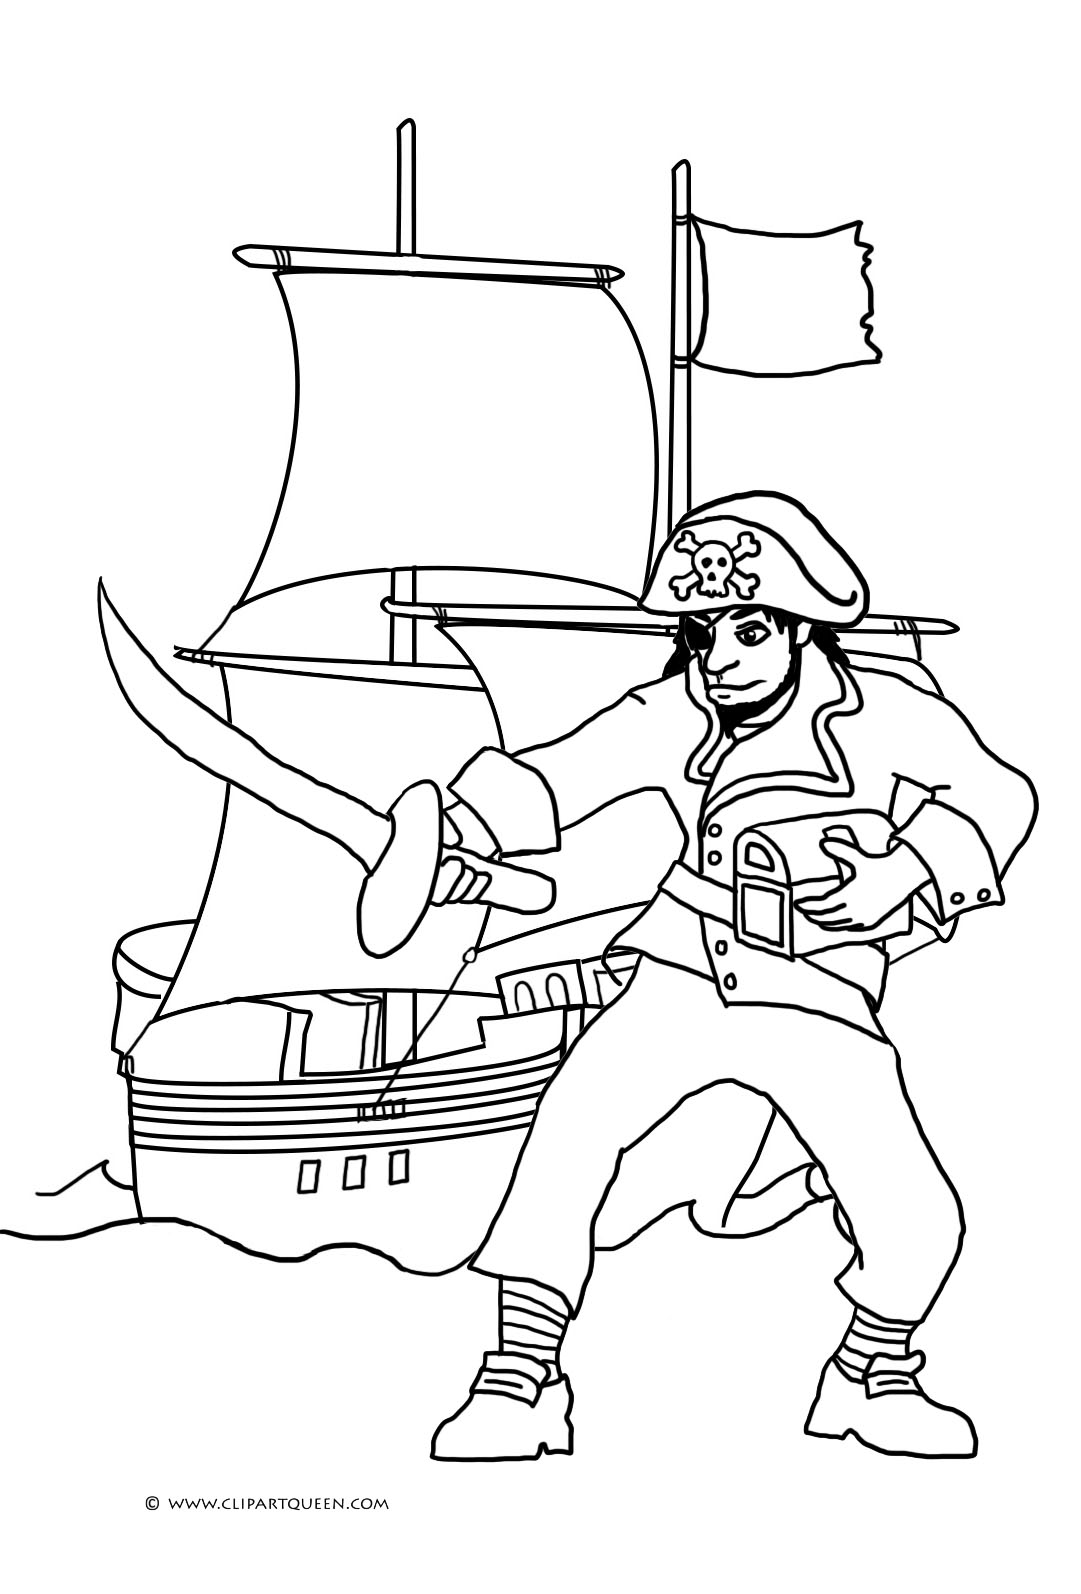 1081x1594 Pirate Coloring Pages